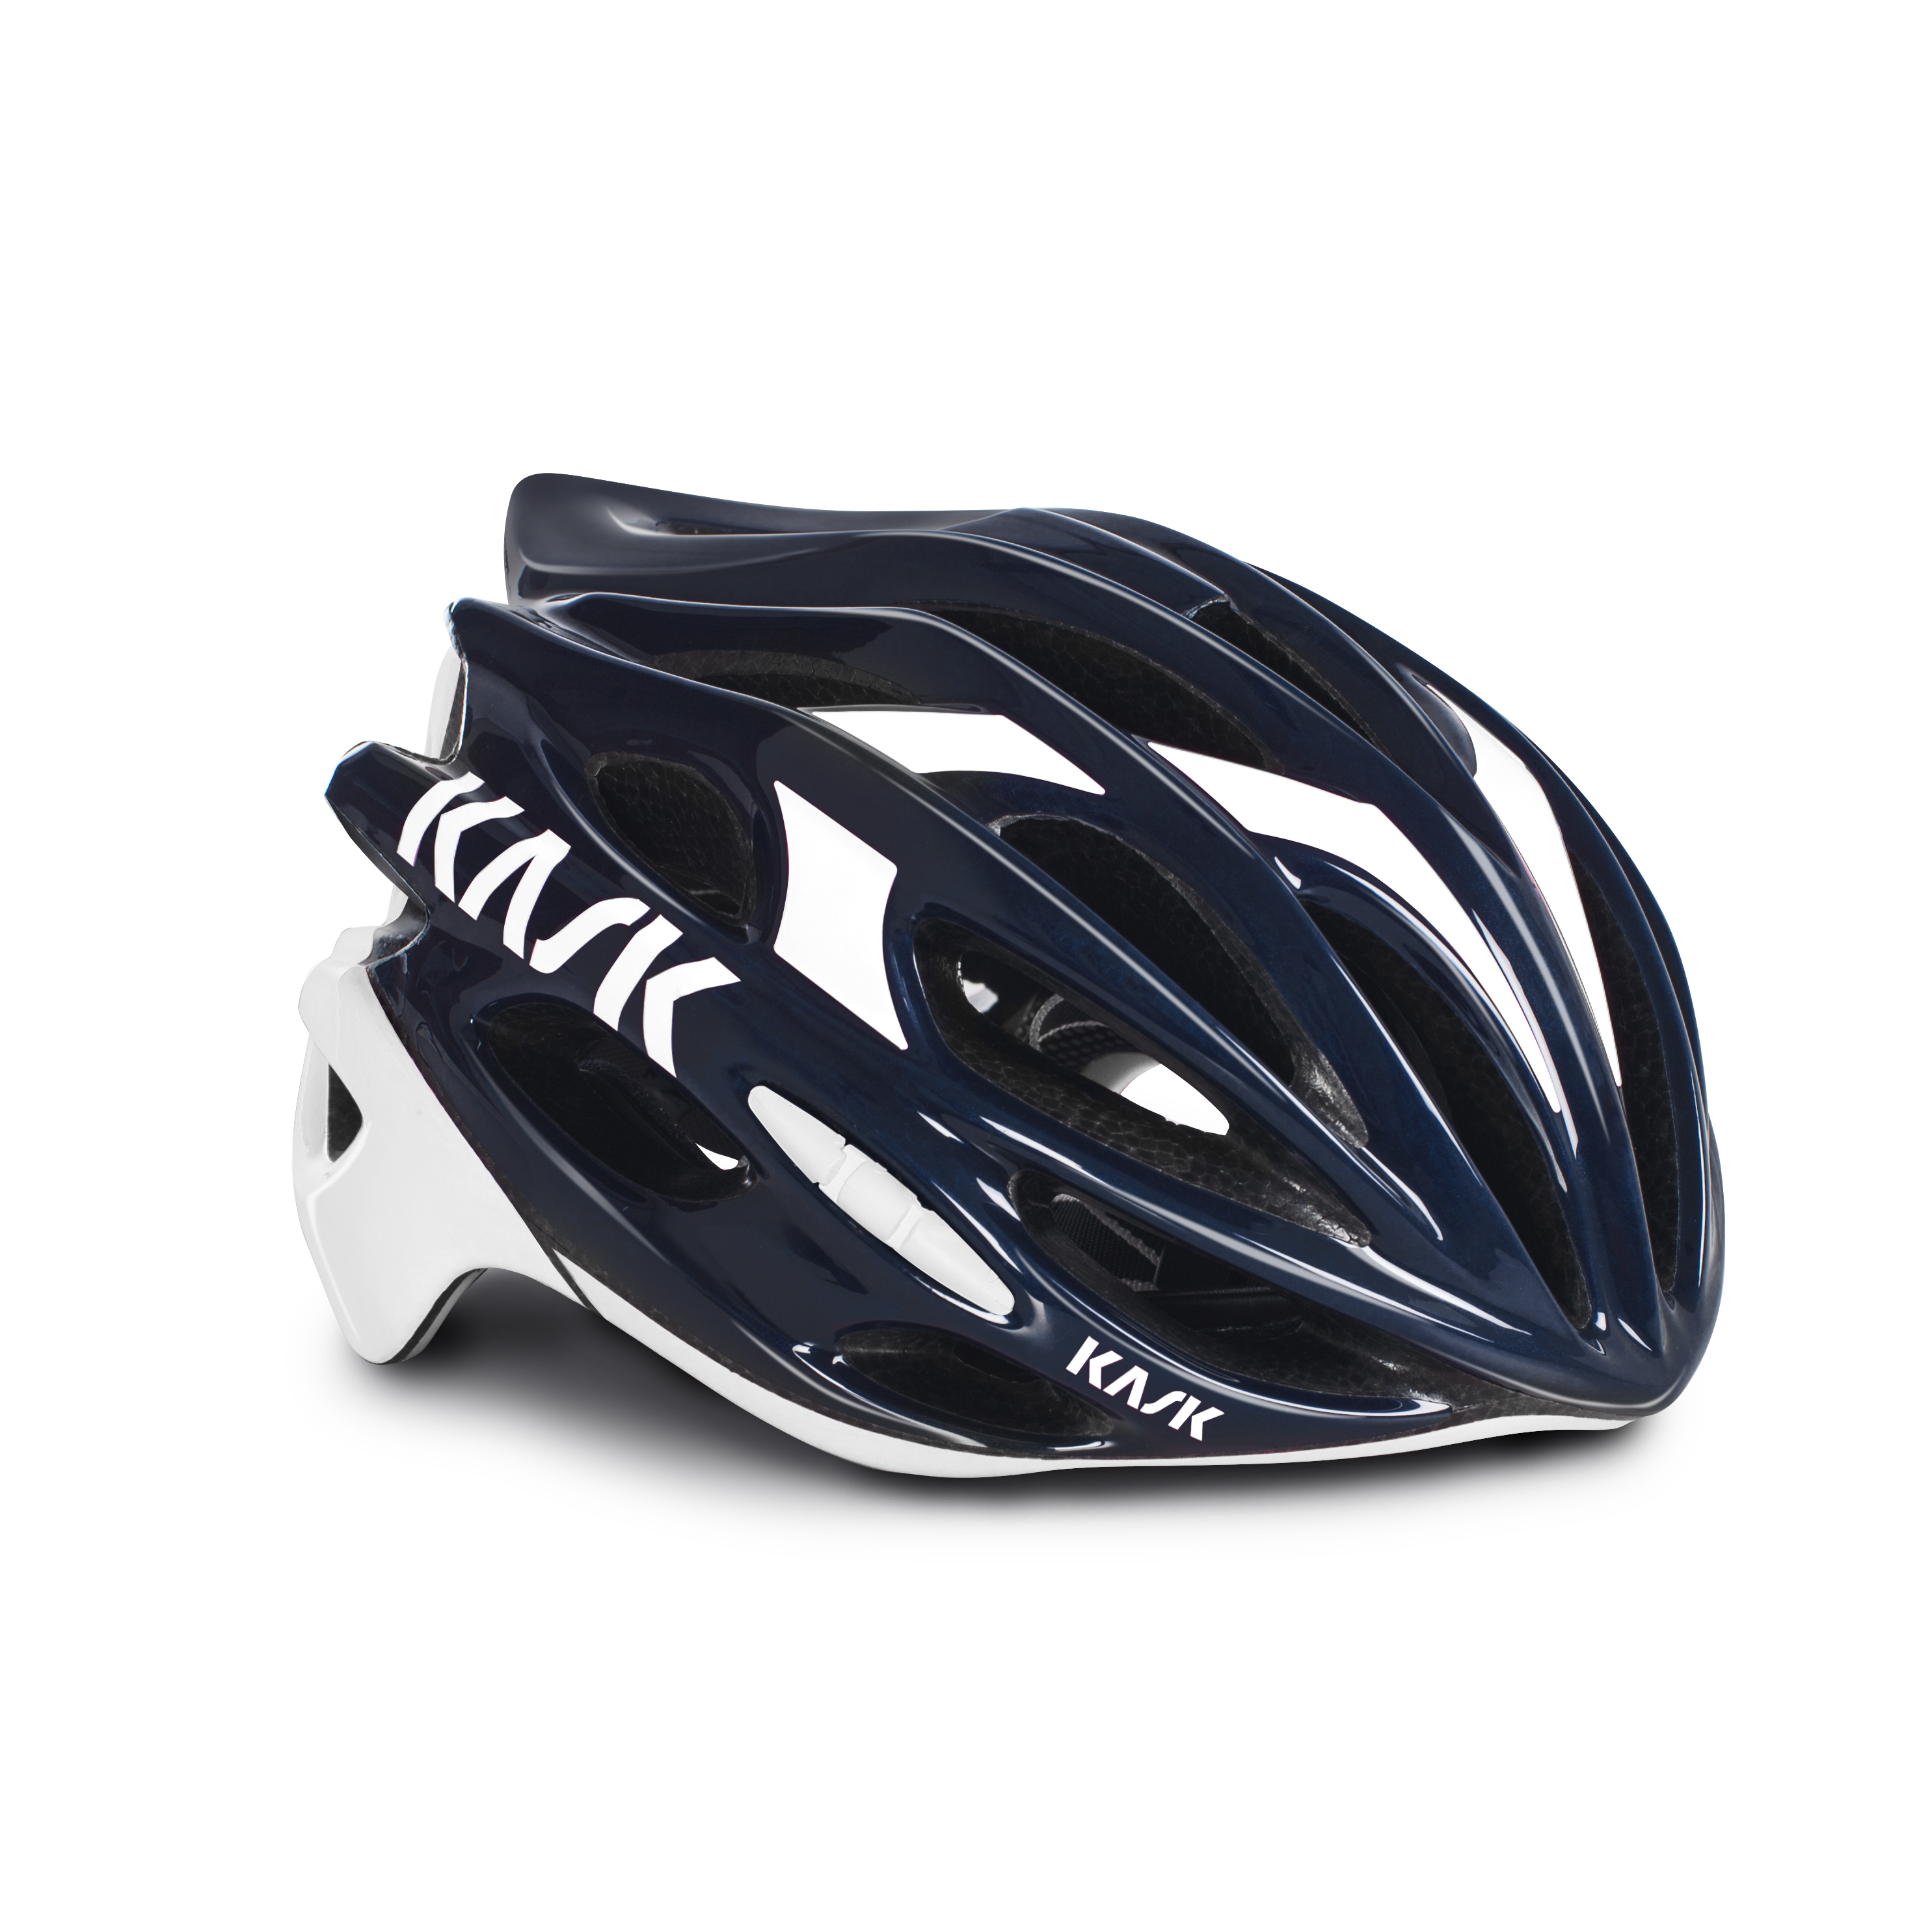 bd4fc8253 Kask Mojito Road Cycling Helmet in Dark Blue and White - 700